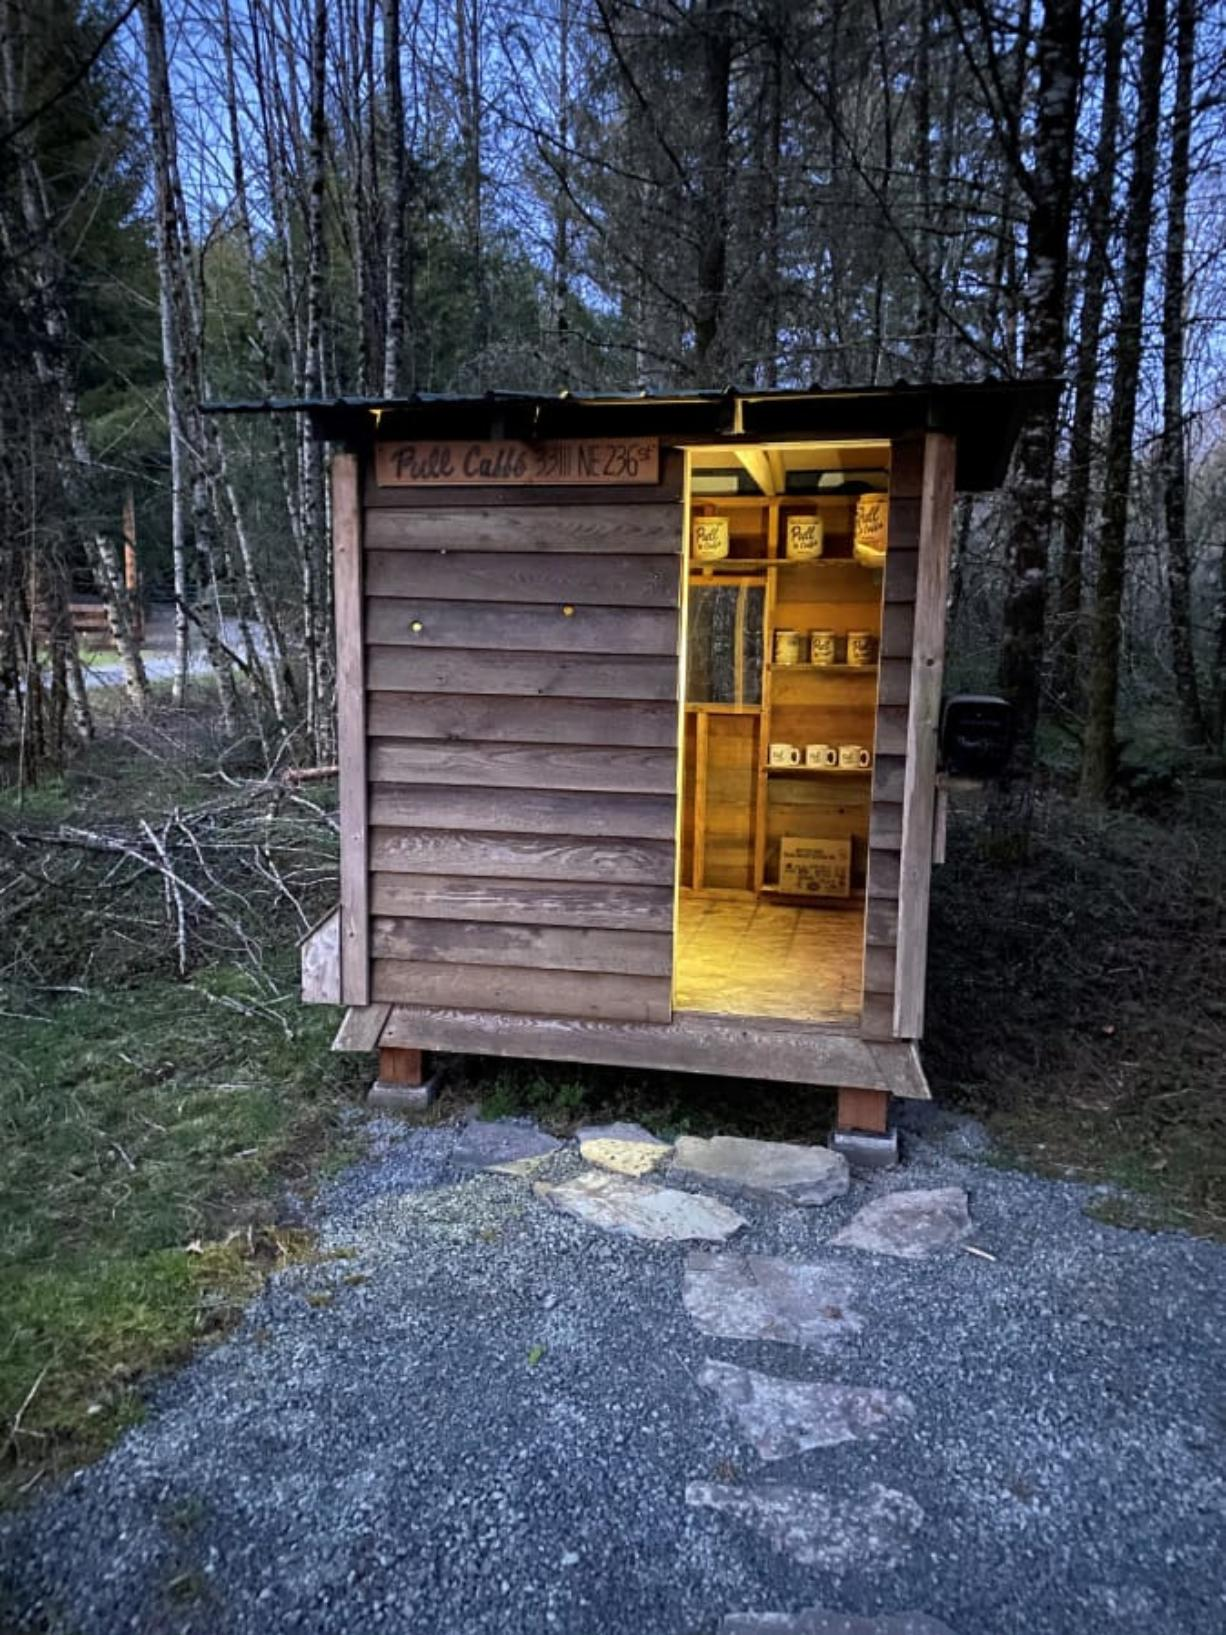 Pull Caffe has been selling coffee out of a small cabin-like structure at the entrance of its property in Yacolt. Buyers pay through an honor system.